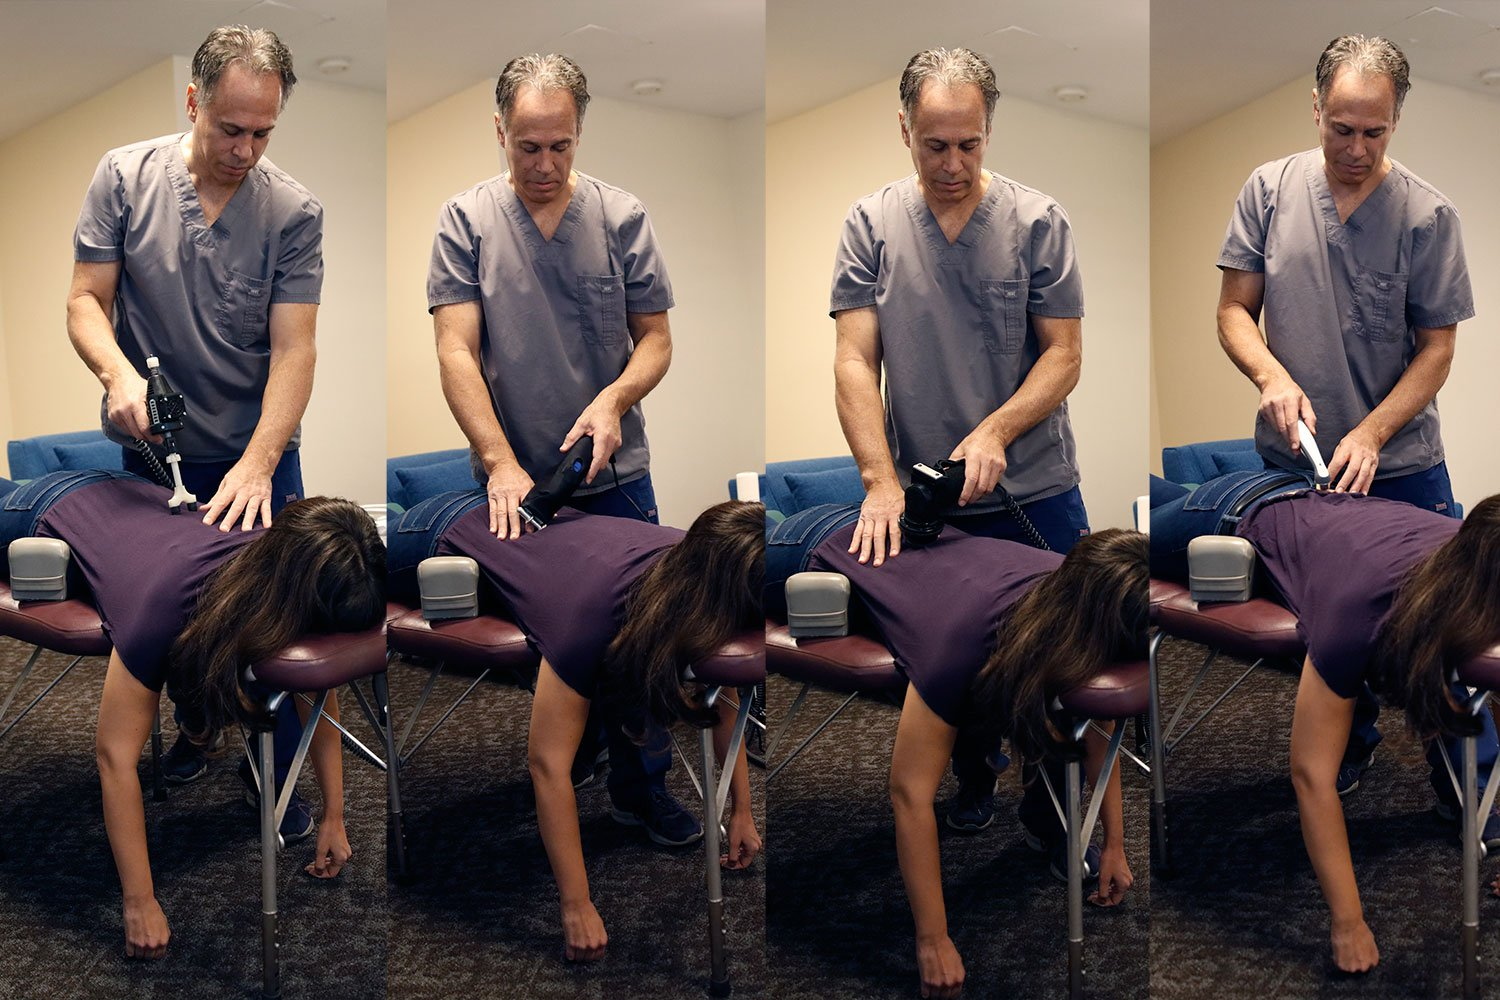 physical therapy modalities can be included in with your chiropractic adjustment